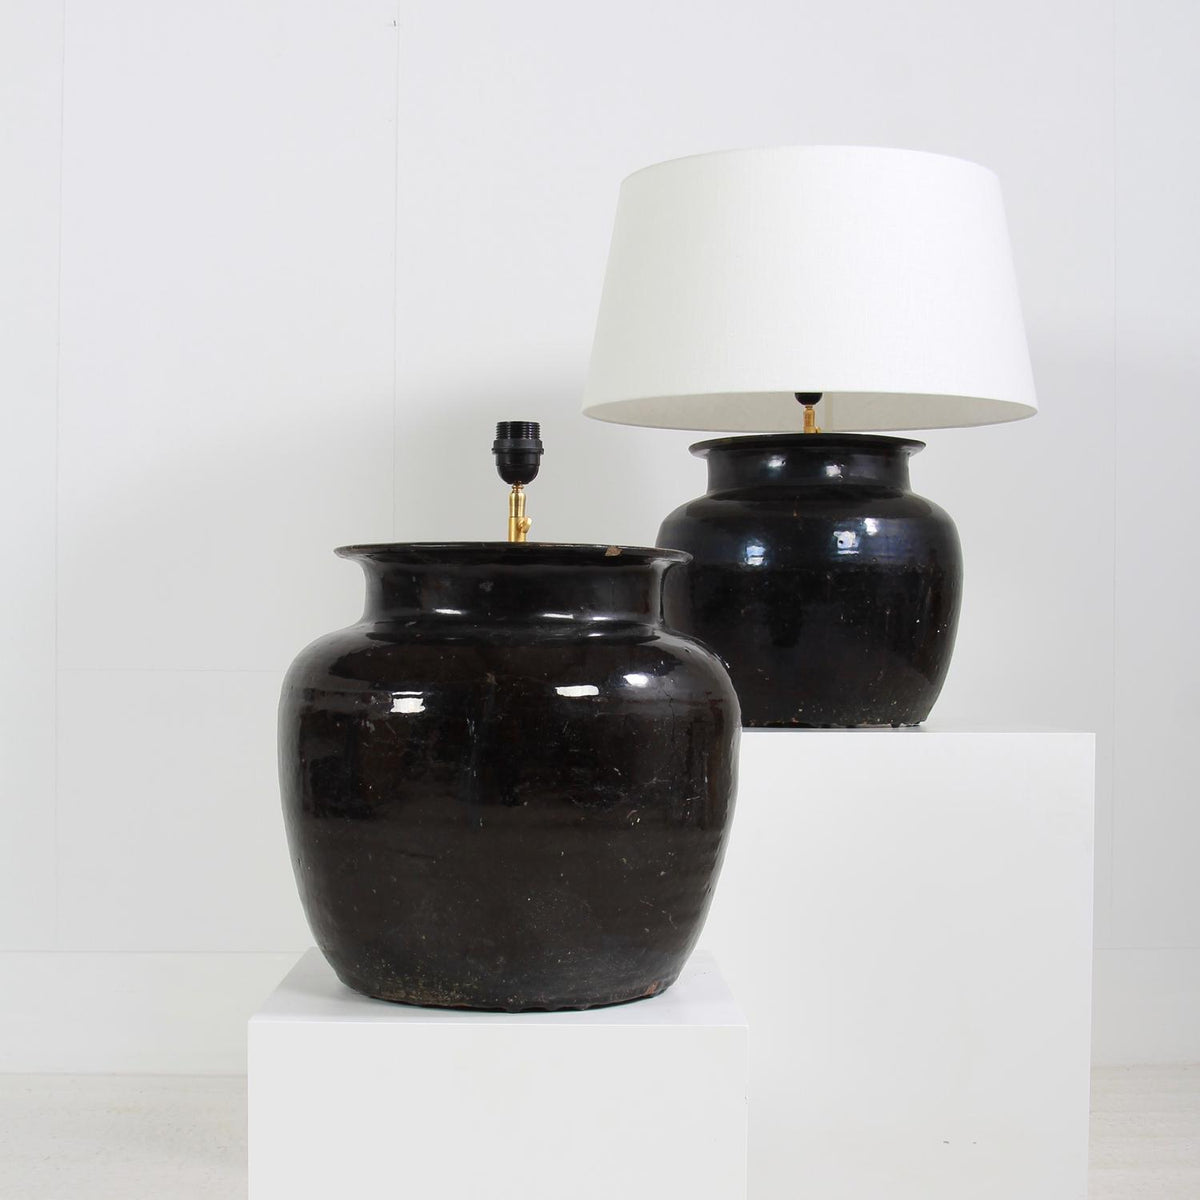 Monumental Antique Black Glazed  Pottery Lamps with White Linen Shades